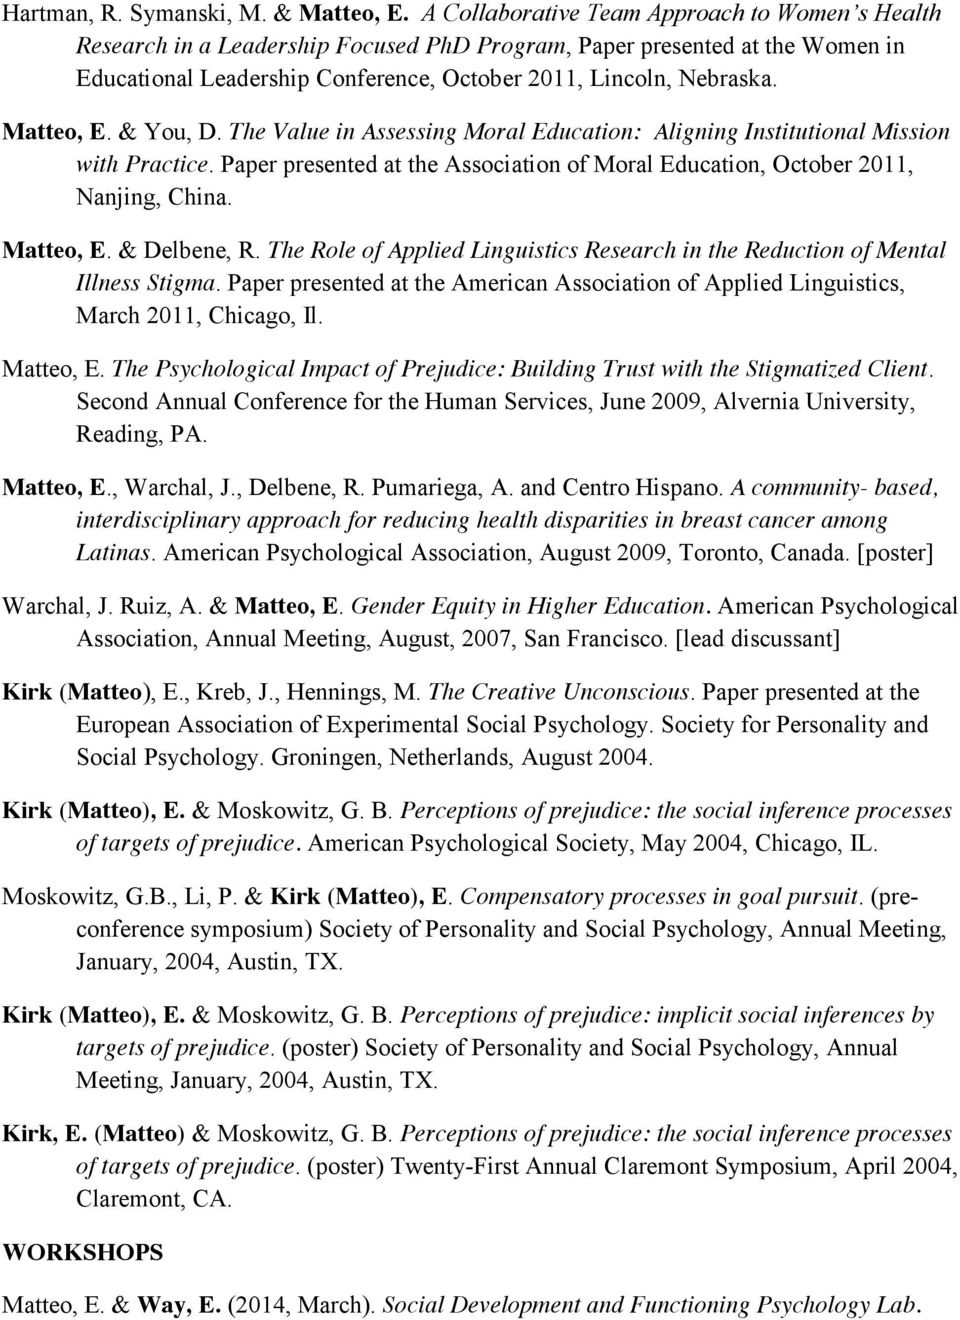 Matteo, E. & You, D. The Value in Assessing Moral Education: Aligning Institutional Mission with Practice. Paper presented at the Association of Moral Education, October 2011, Nanjing, China.